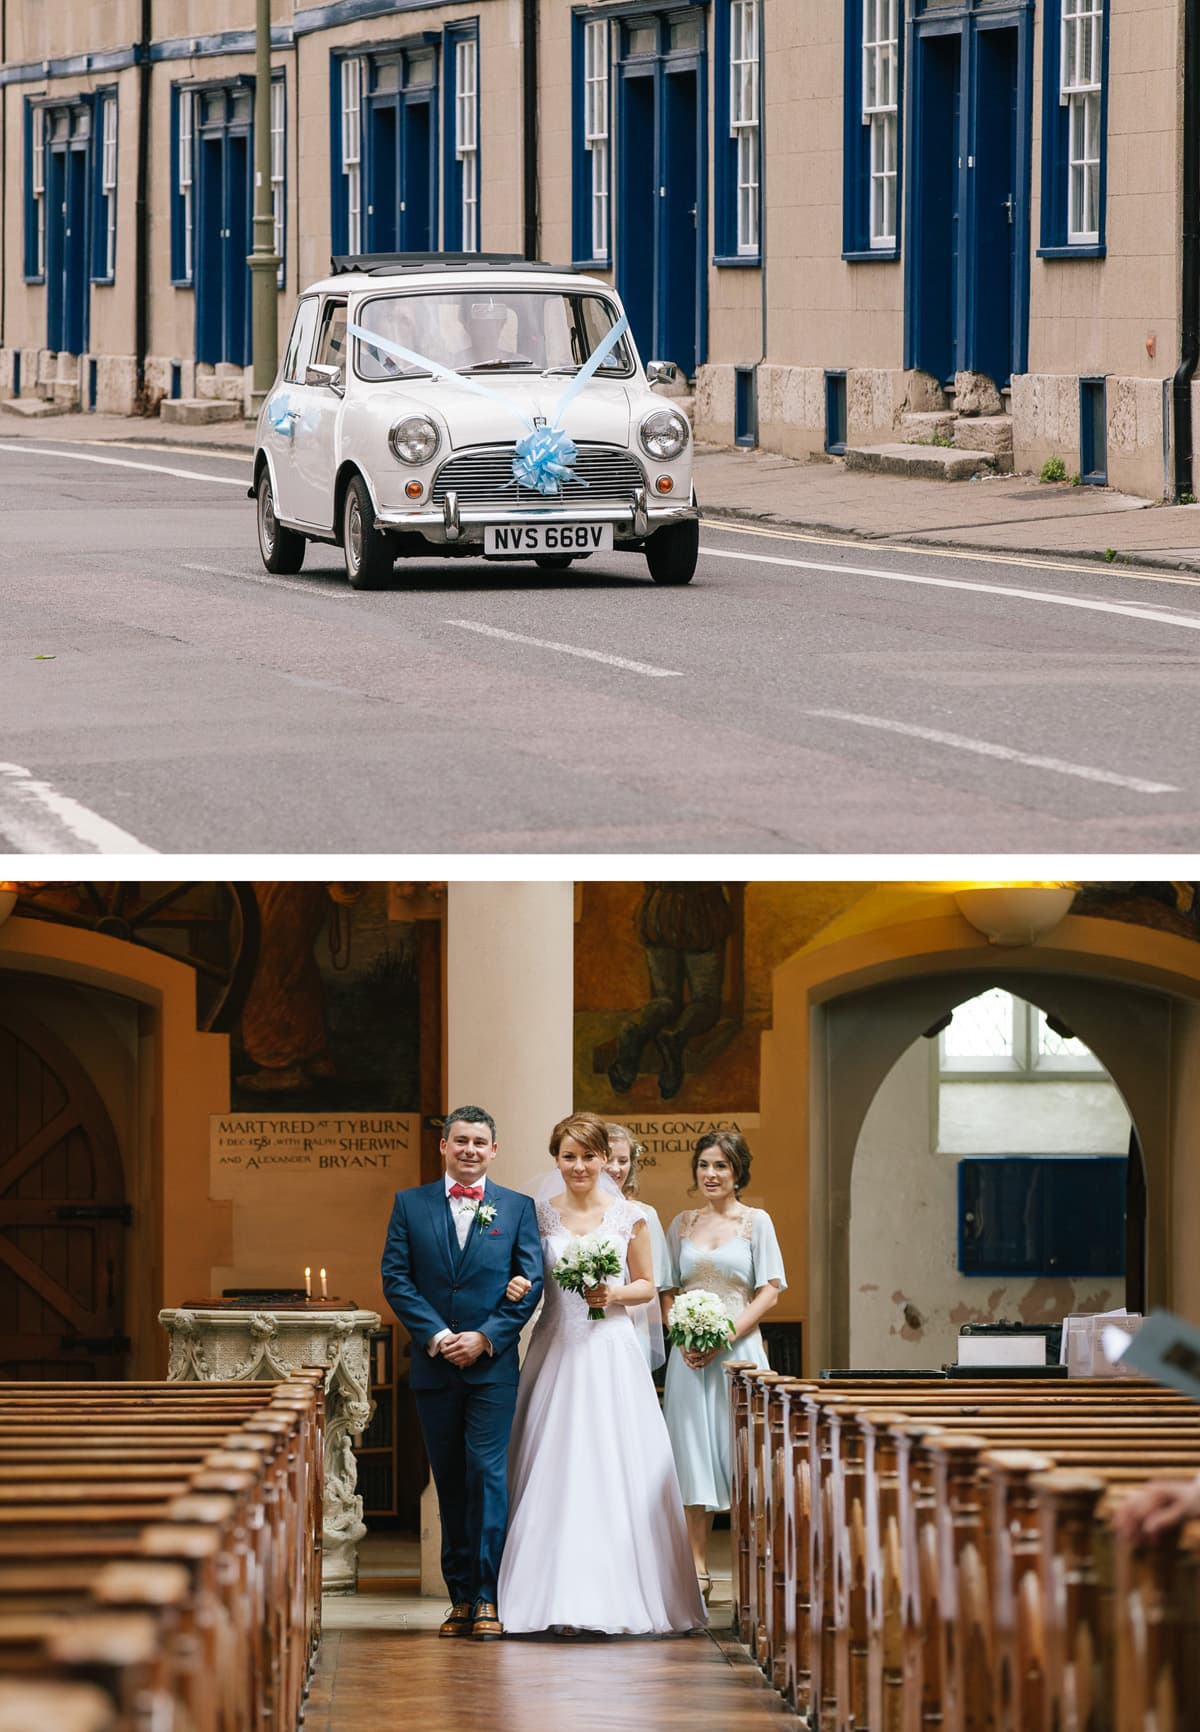 Collage of images from top: Vintage mini on the way to the church driven by groom; bride and groom walk down the aisle together